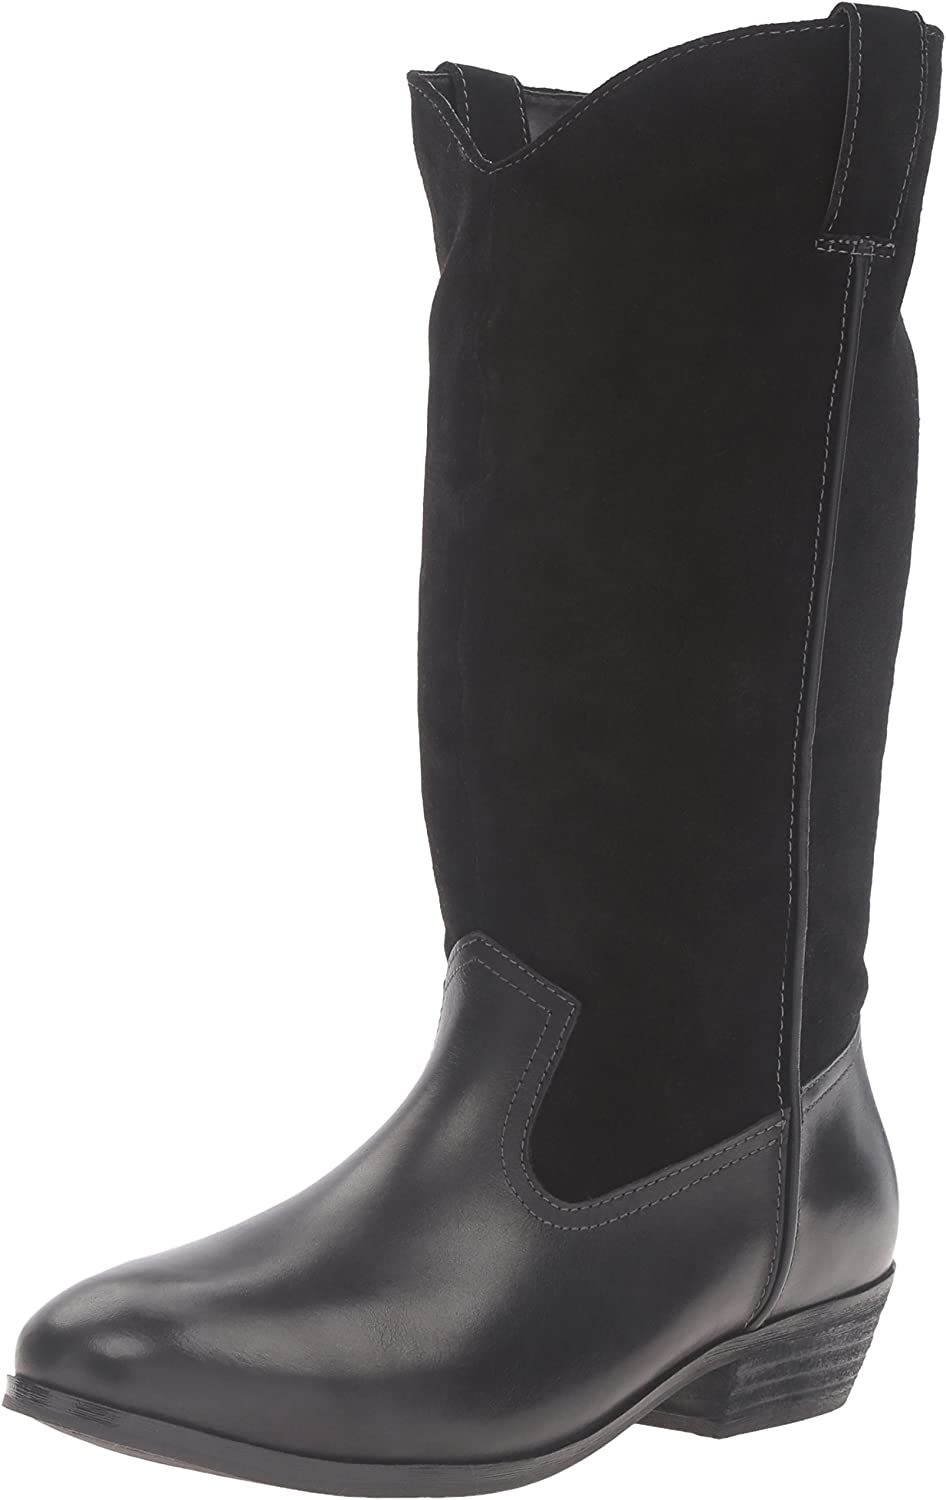 SoftWalk Womens Rock Creek Wide Calf Boot